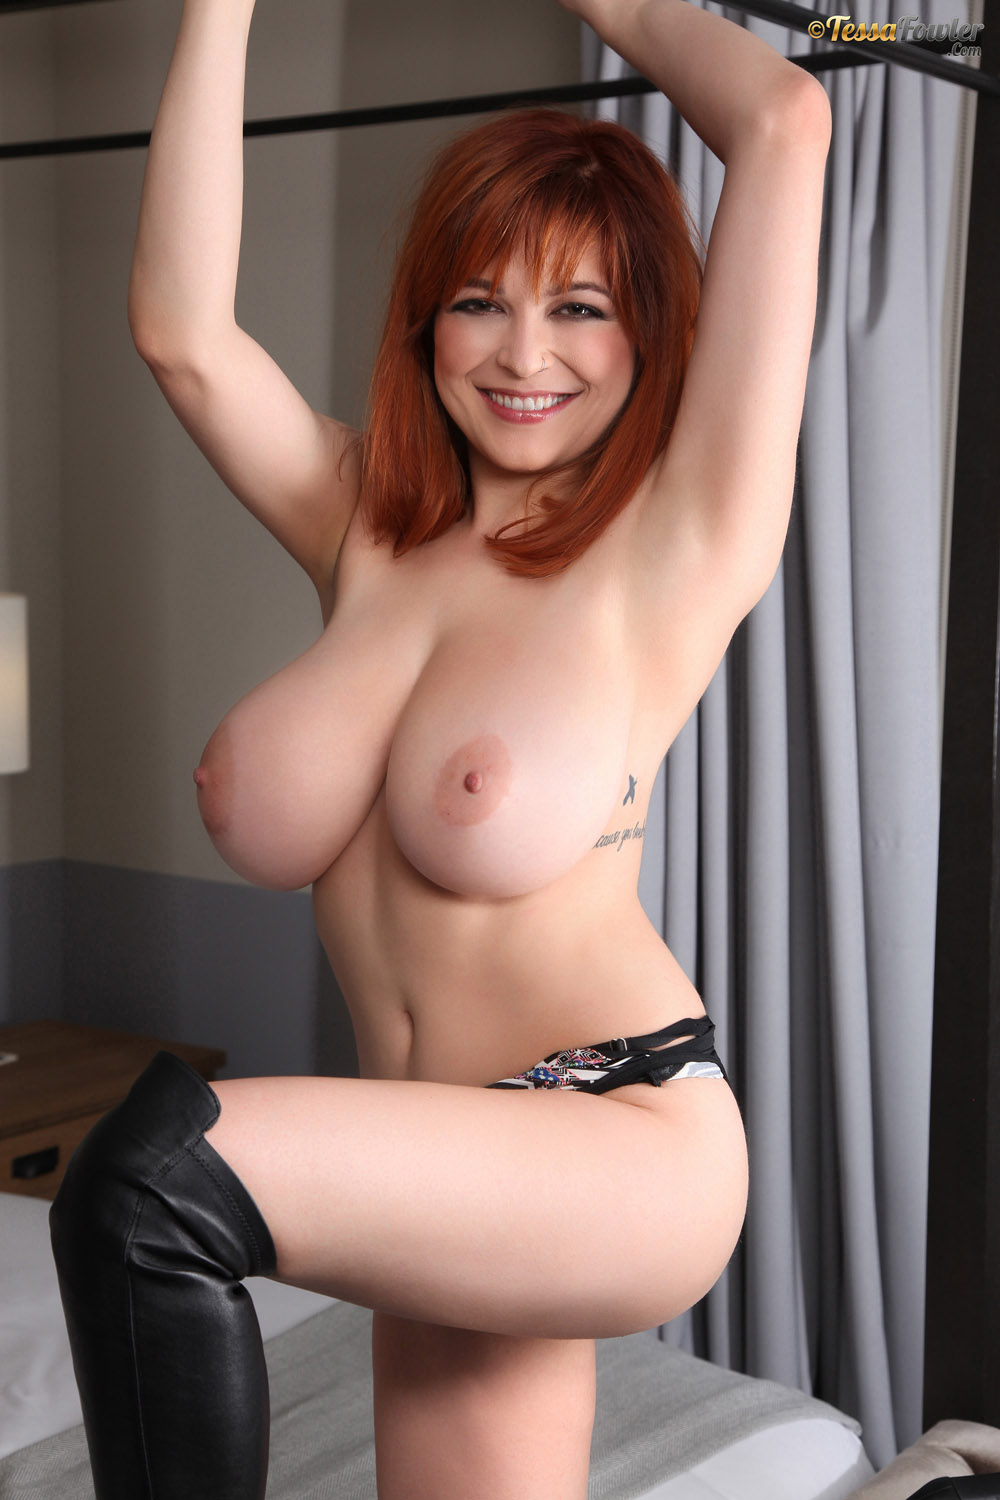 Tessa fowler full frontal